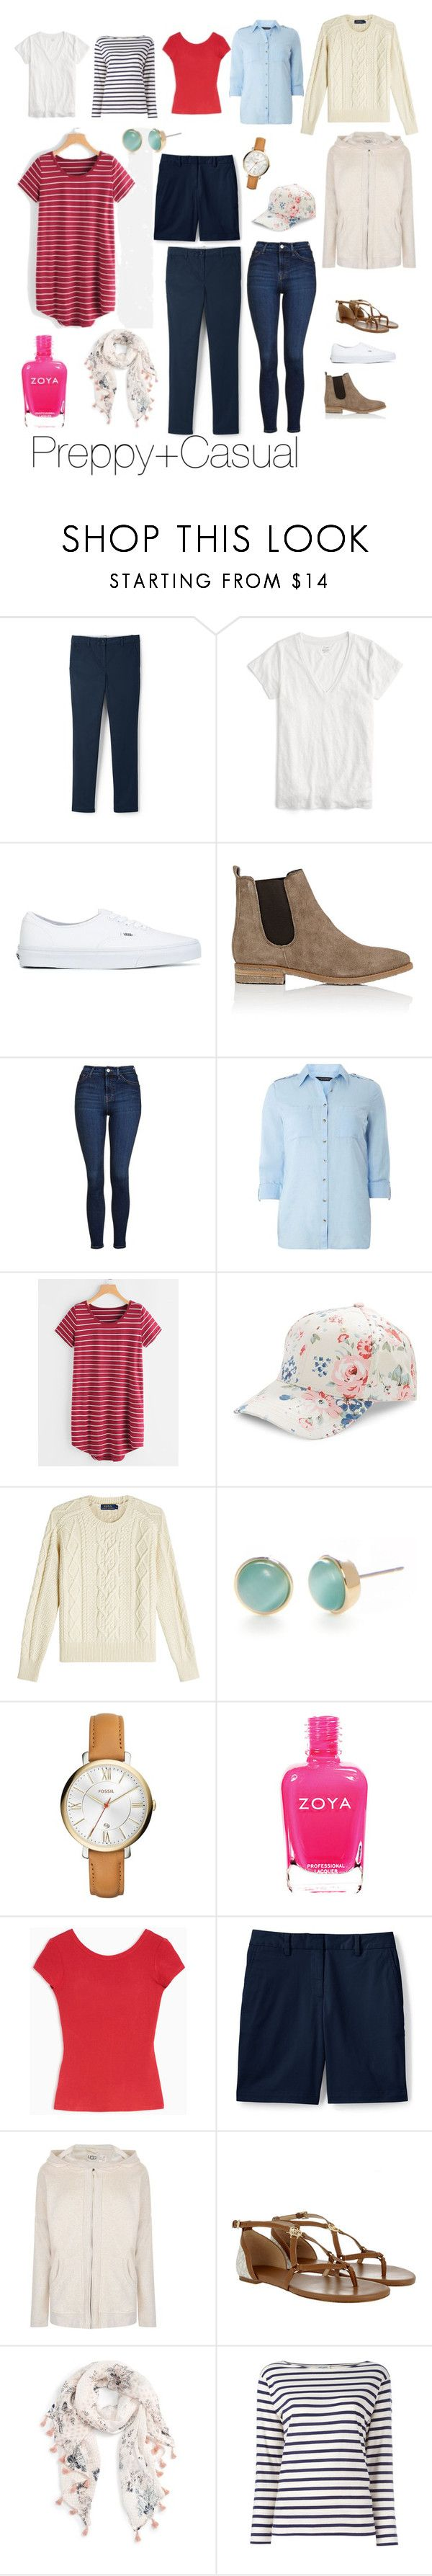 """""""Preppy Casual"""" by cheryl-eisenschmid on Polyvore featuring Lands' End, J.Crew, Vans, Barneys New York, Topshop, Dorothy Perkins, BCBGeneration, Polo Ralph Lauren, Kate Spade and FOSSIL"""